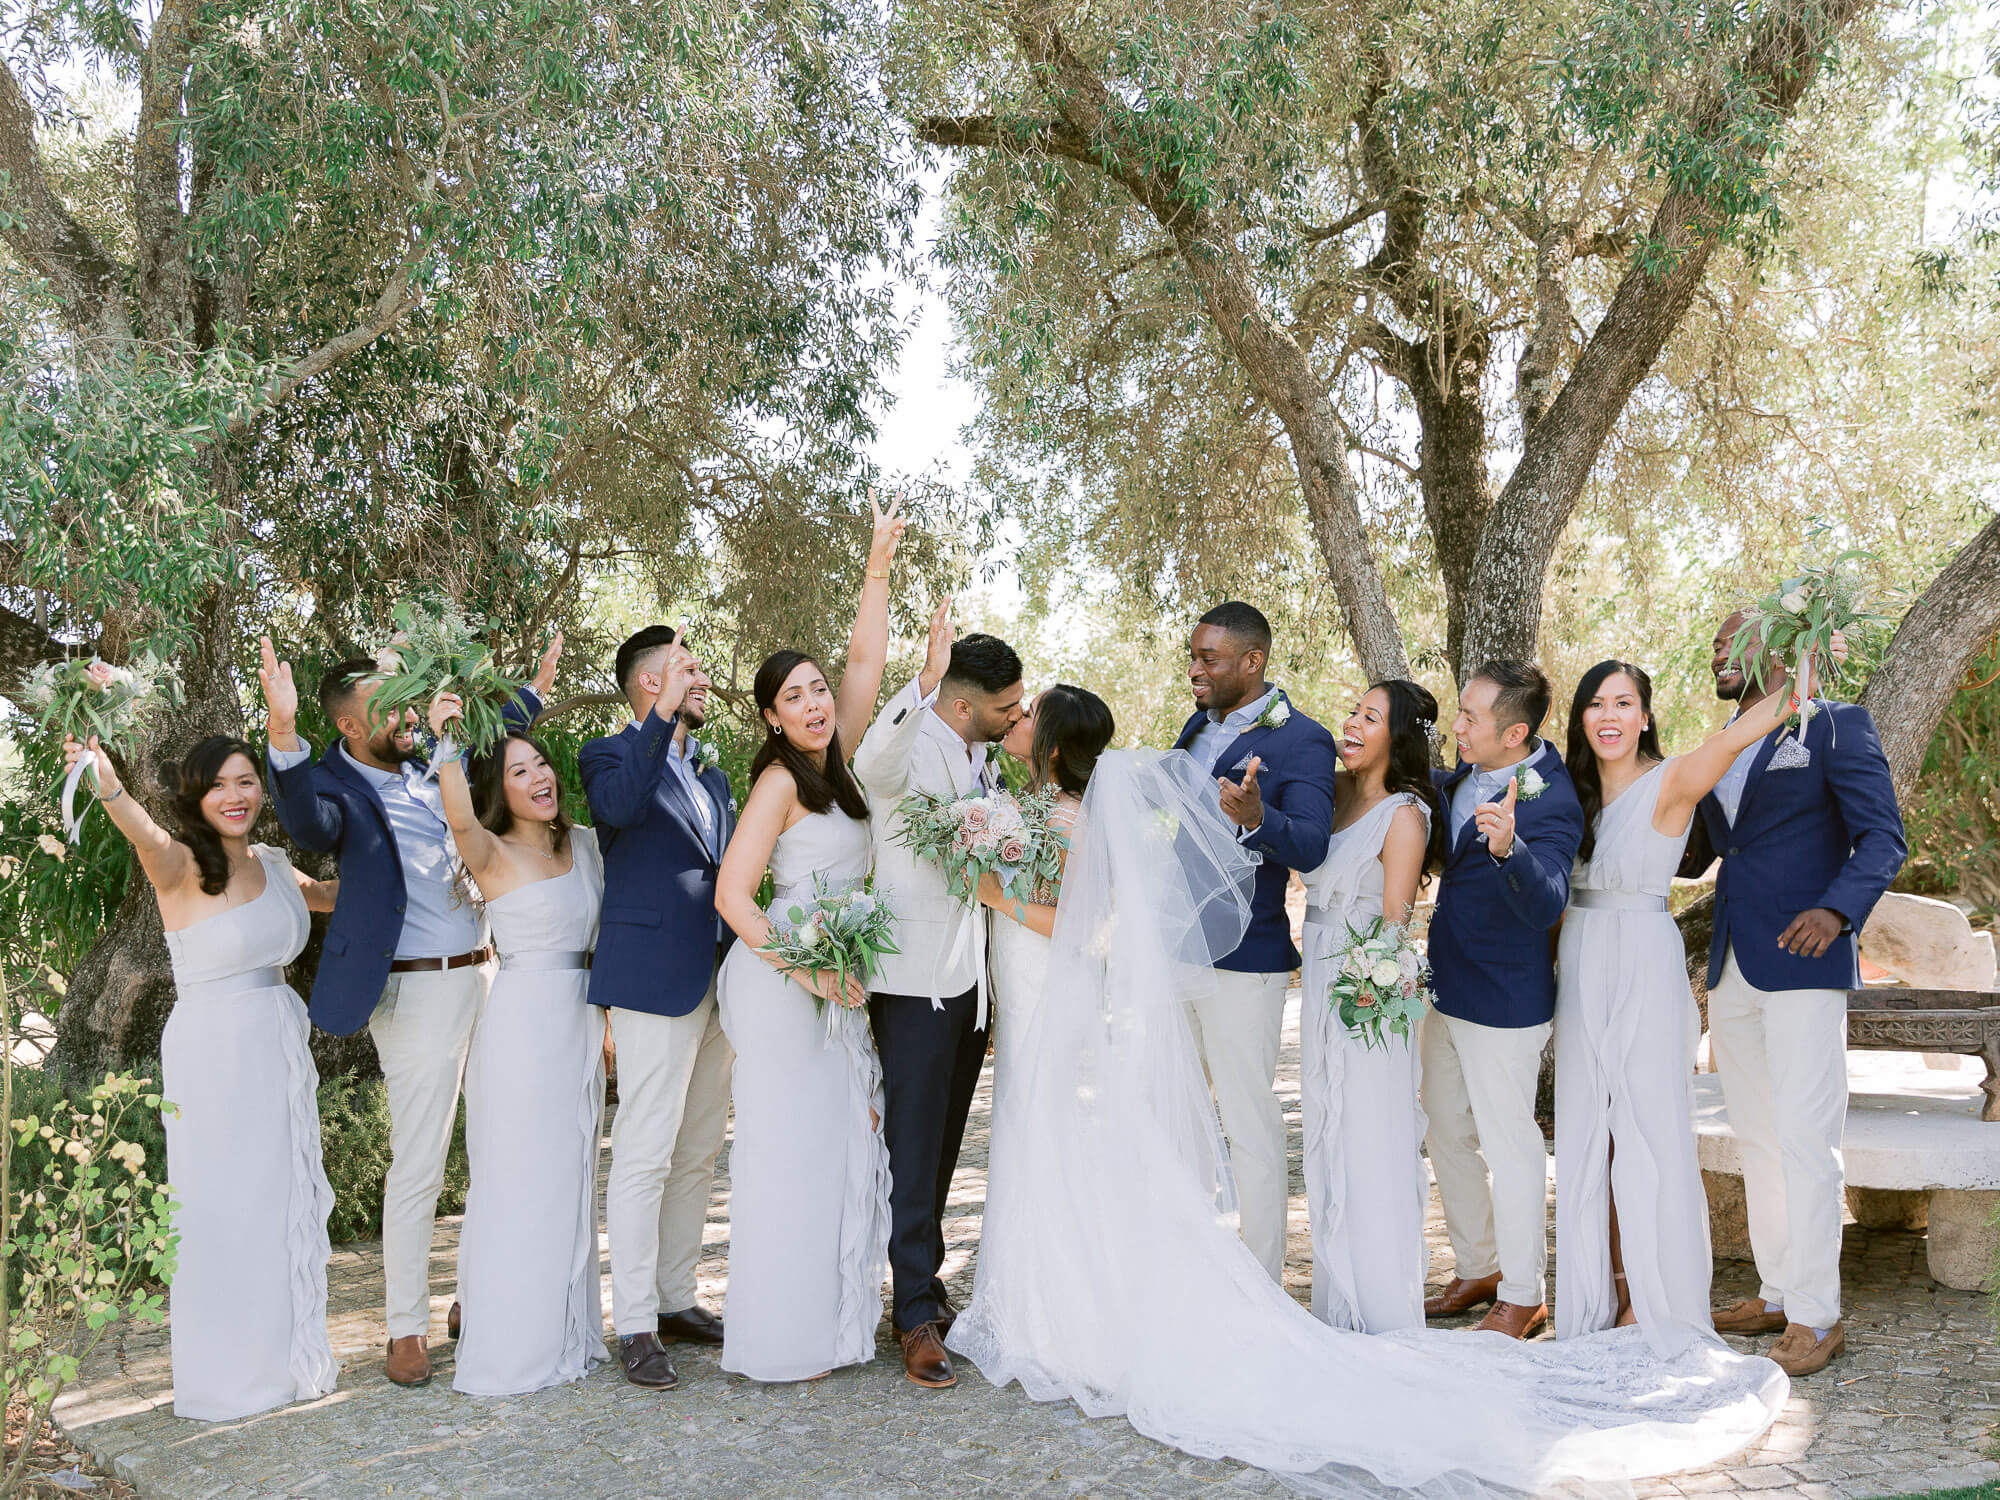 bride, groom, bridesmaids and groomsmen cheerful portrait at a wedding in the Algarve by Portugal Wedding Photographer